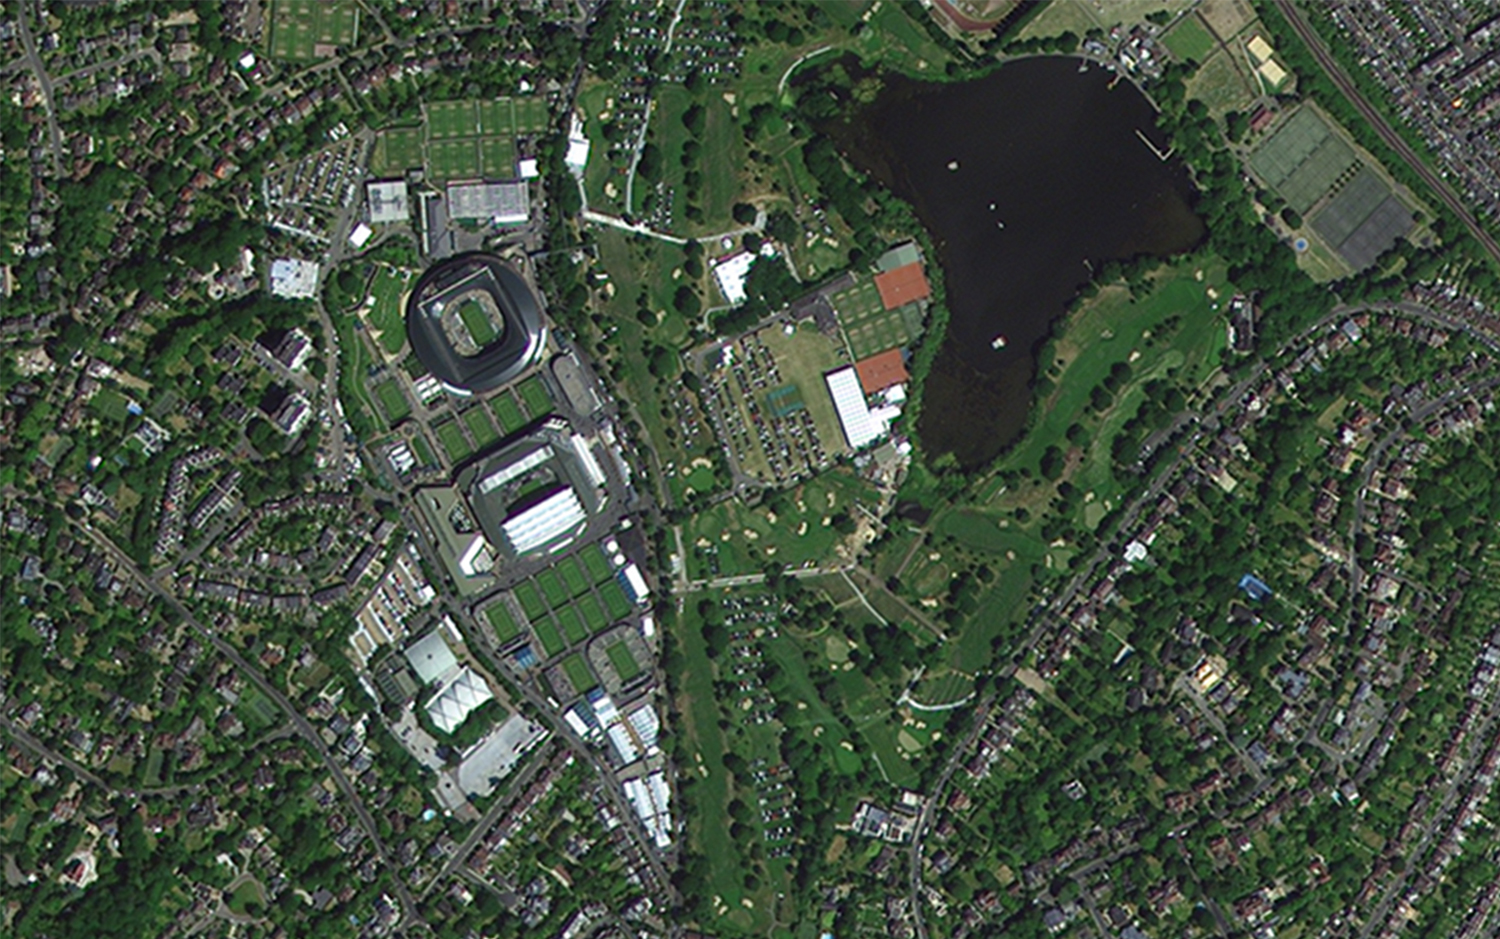 All England Lawn Tennis Club imaged by one of the DMC3/TripleSat Constellation satellites, July 2018.  Credit 21AT.